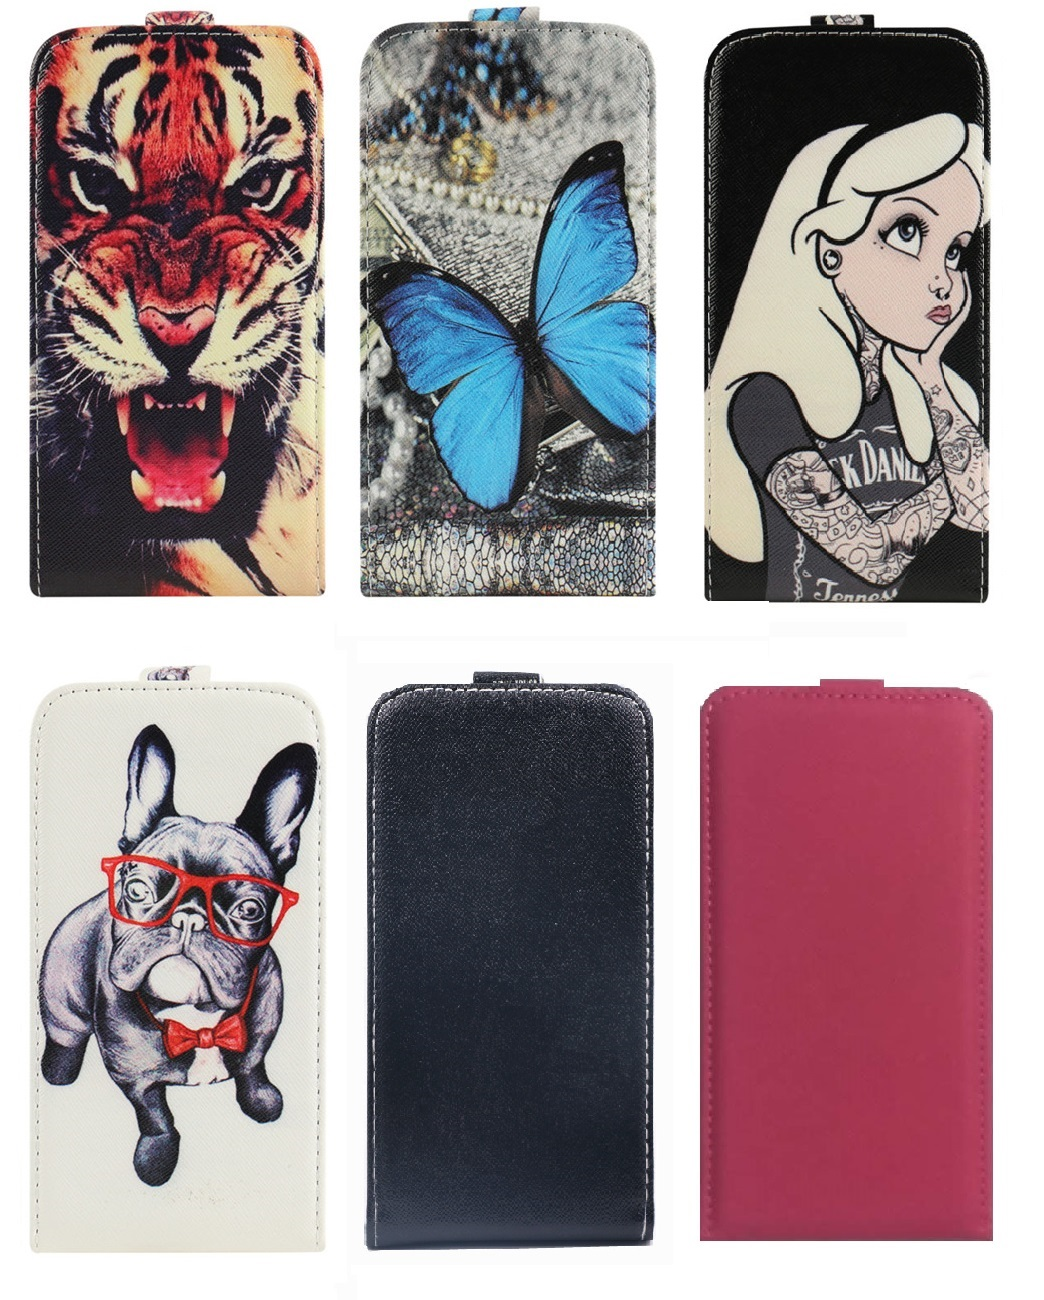 Yooyour Dos Desenhos Animados Impresso Flip PU Leather Case Cover shell shell Para Philips S337 para Philips Xenium V787 para Philips S326